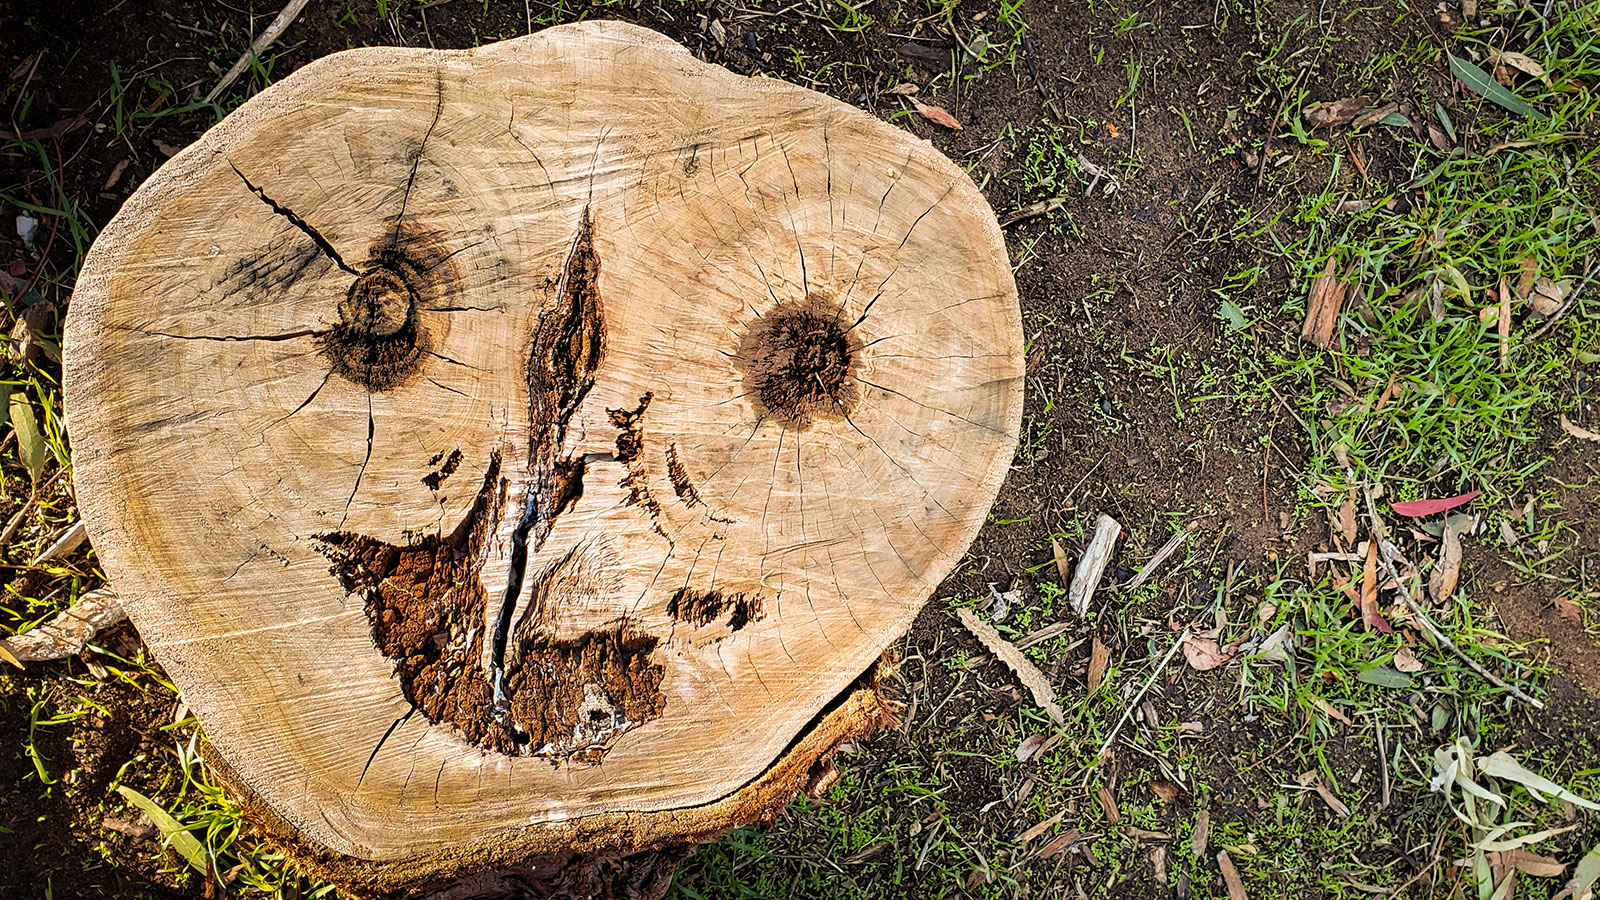 Pareidolia: Why We See Faces in Almost Everything